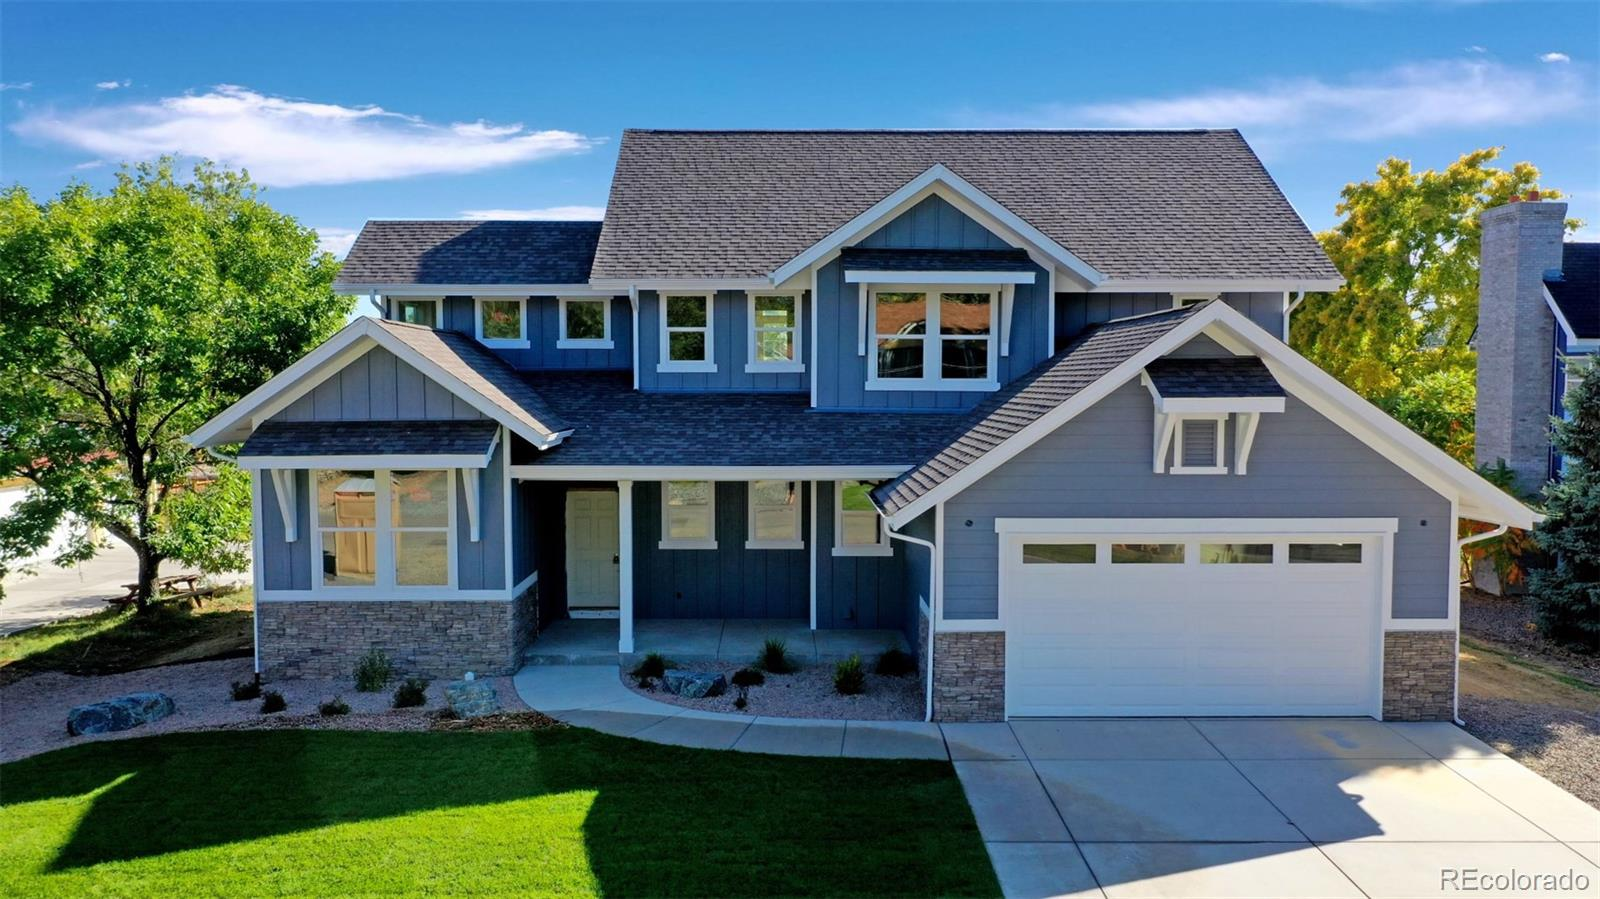 MLS# 6218447 - 1 - 9080 W 64th Place, Arvada, CO 80004